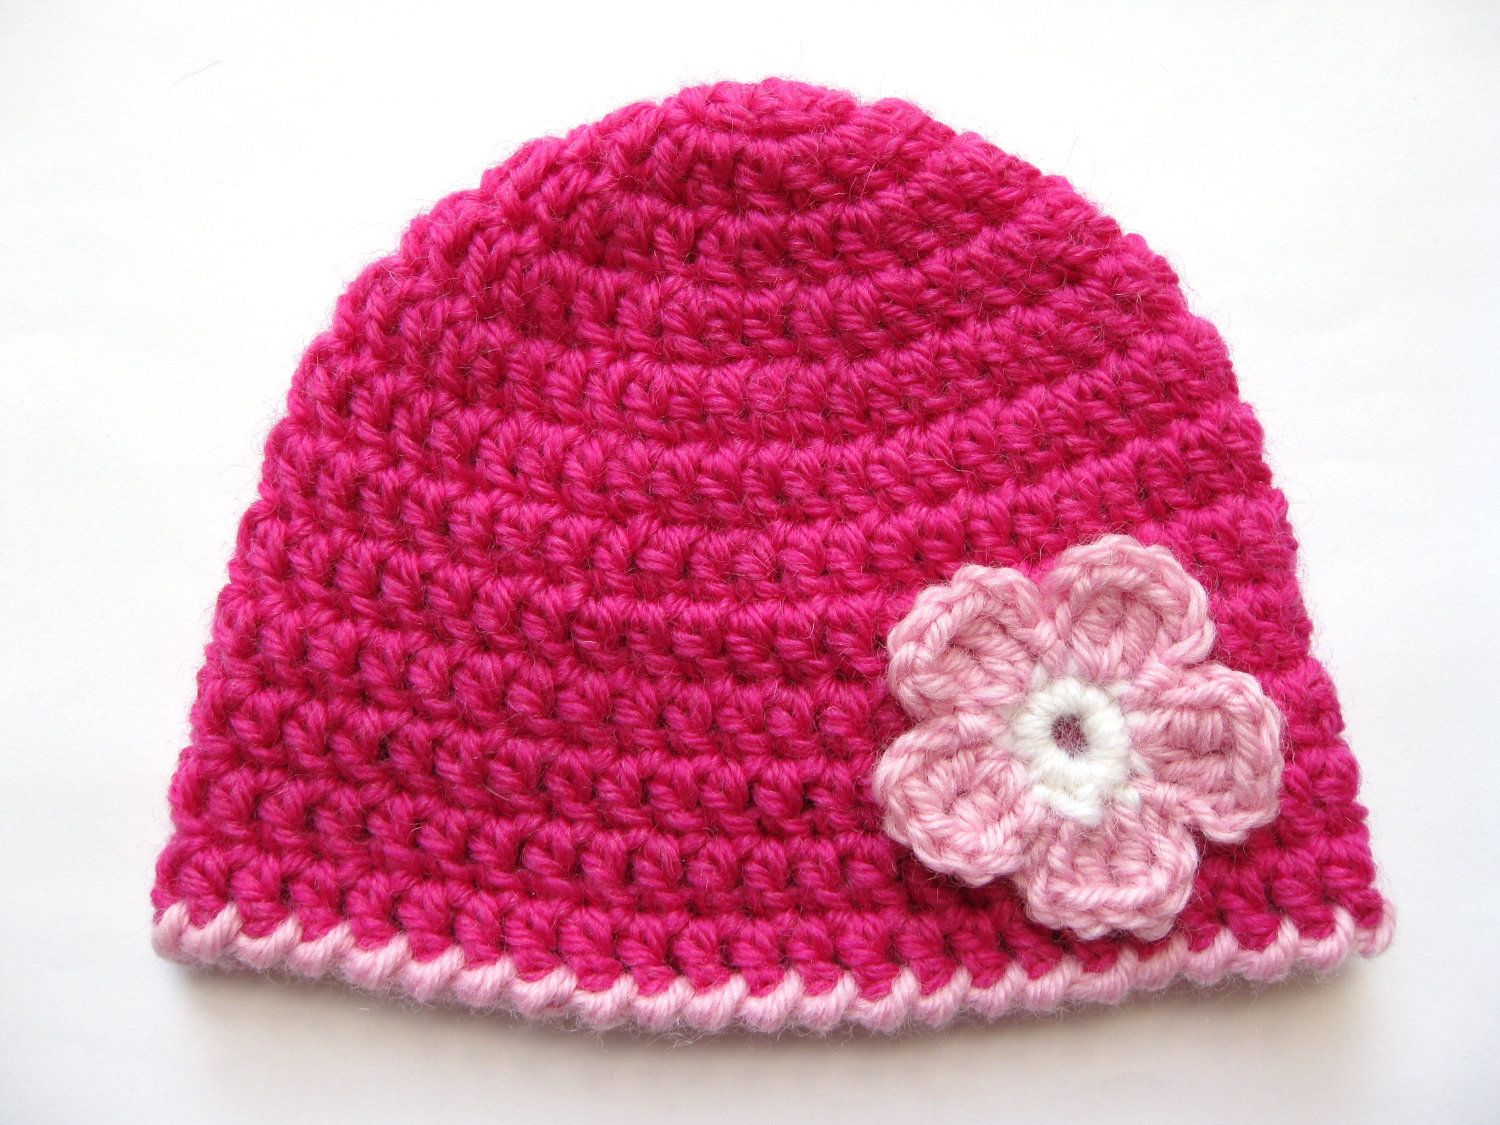 Instant download pattern crochet preemie hat crochet pink flower instant download pattern crochet preemie hat crochet pink flower 8ply dk double knit light worsted edge bankloansurffo Choice Image